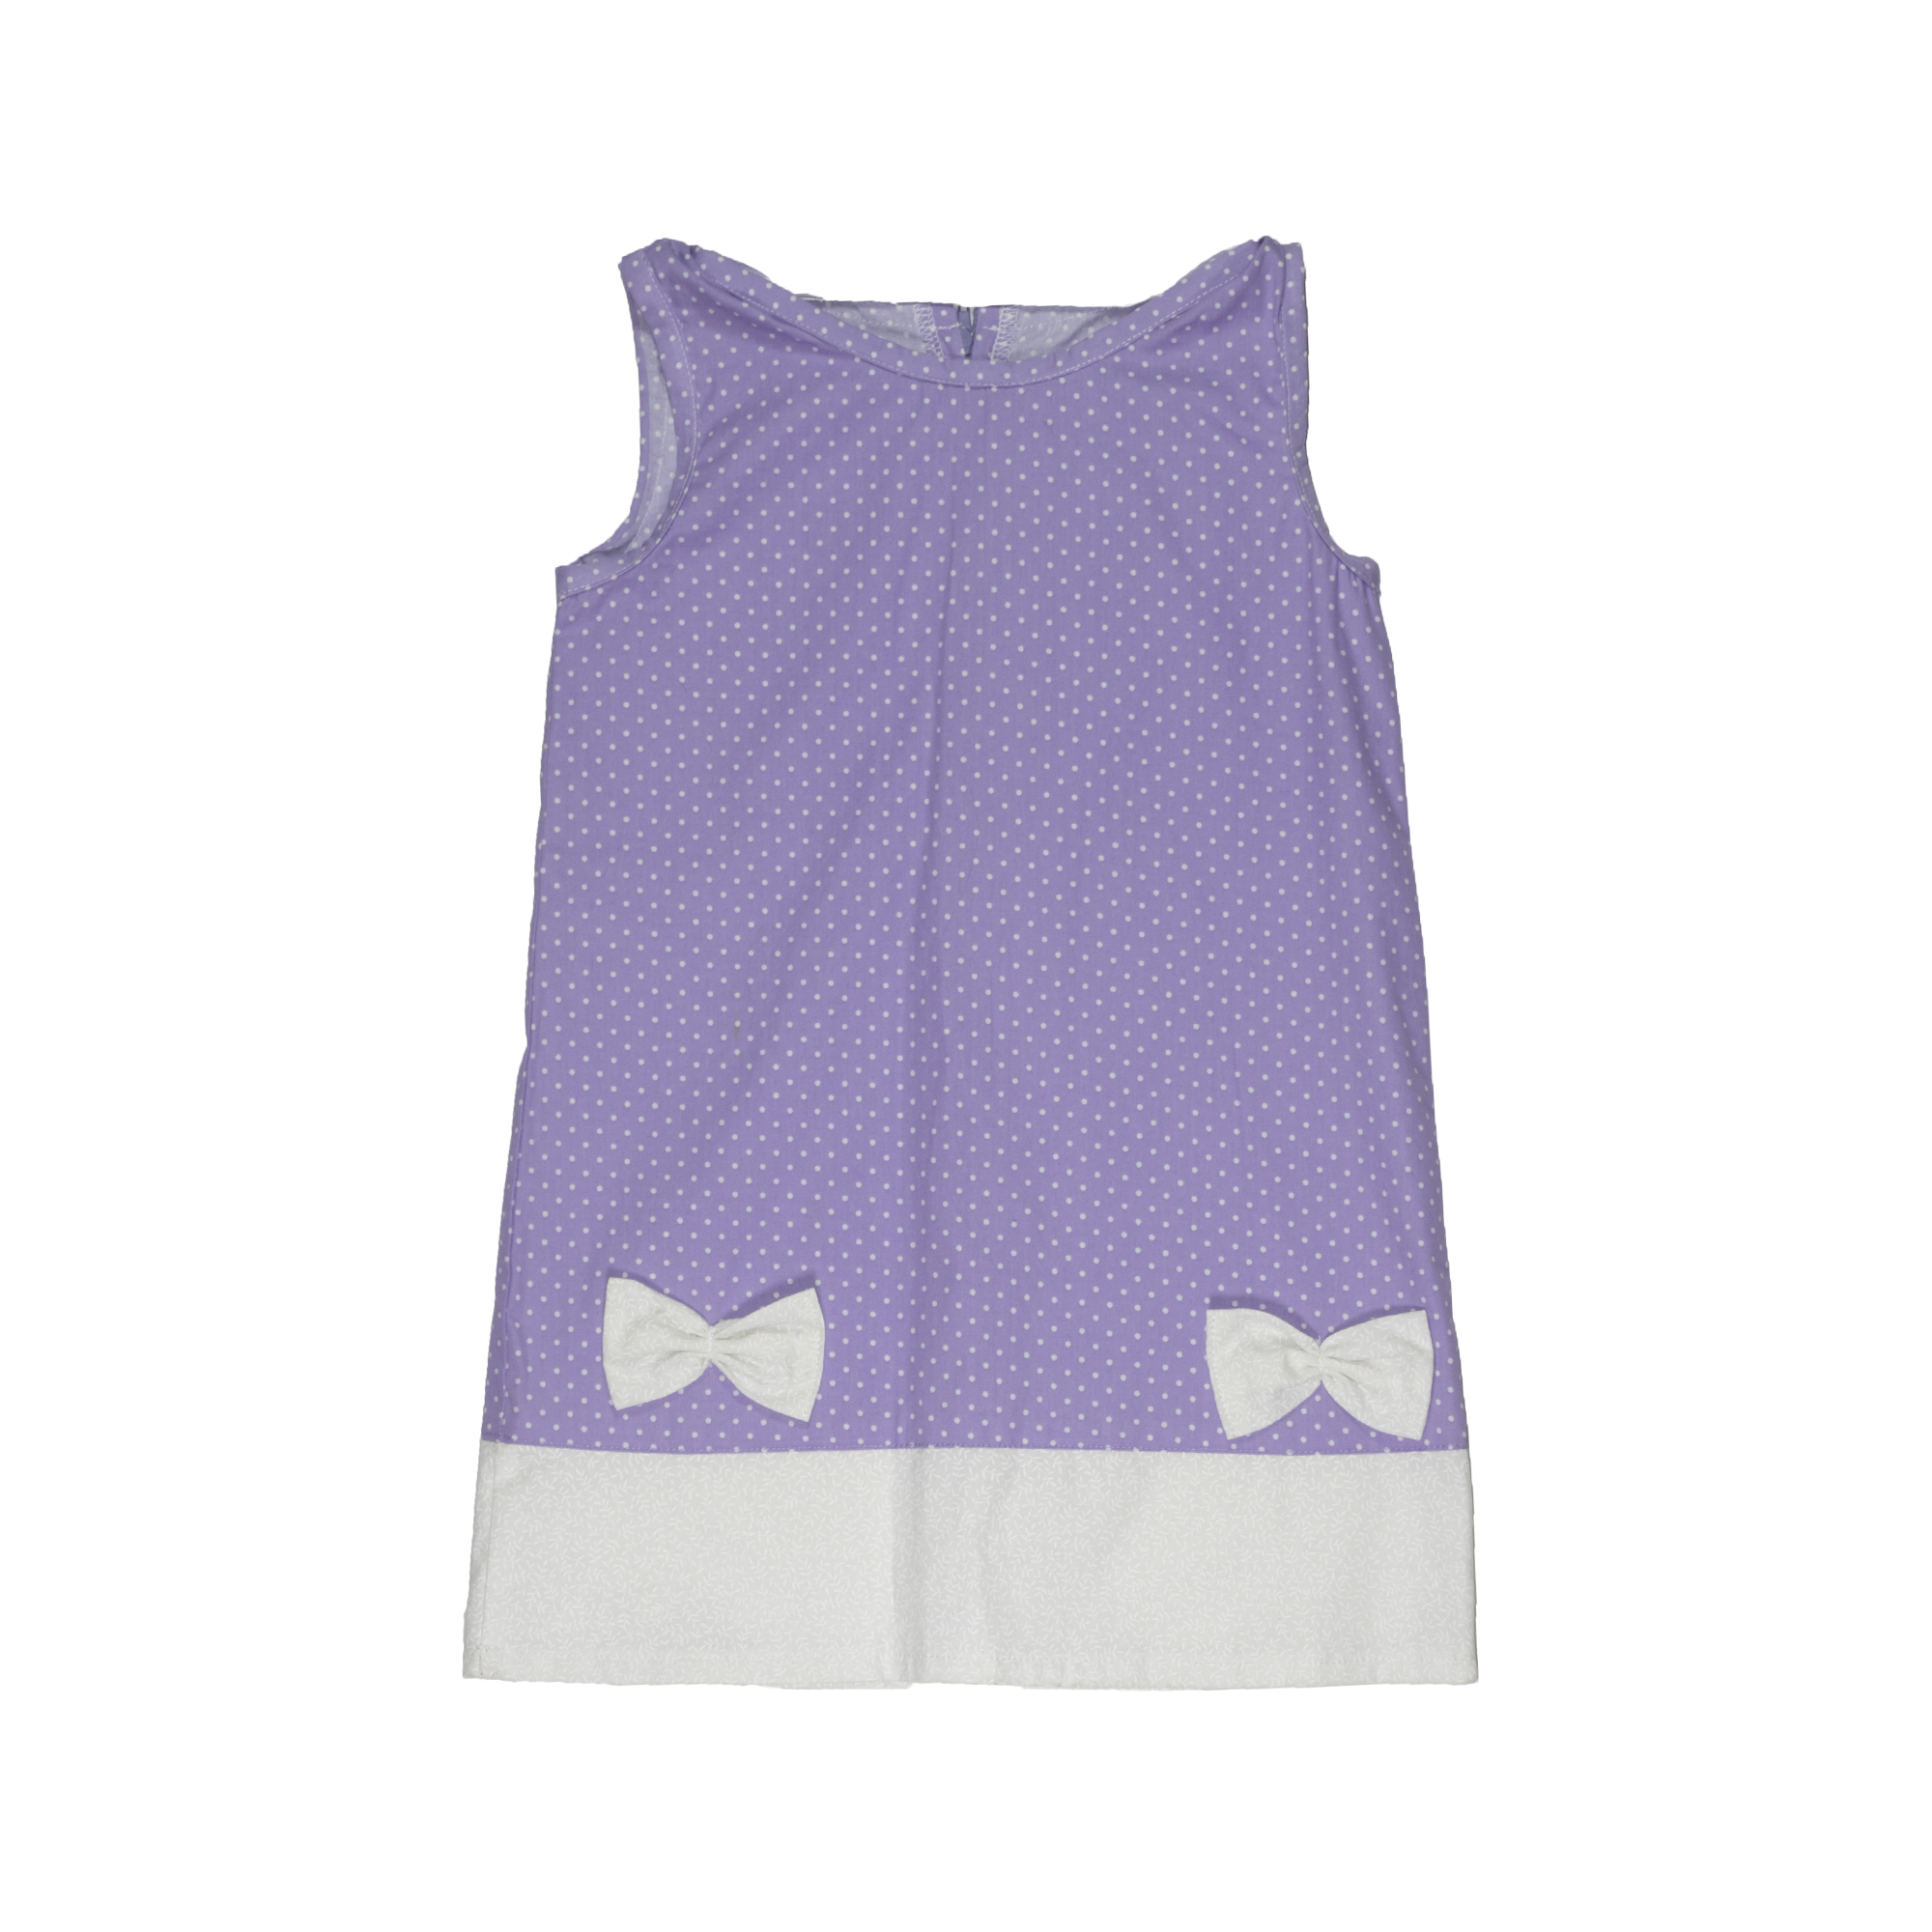 05f1dd50d10f5 Girls Dress - Purple and white polka dot cotton dress with bows